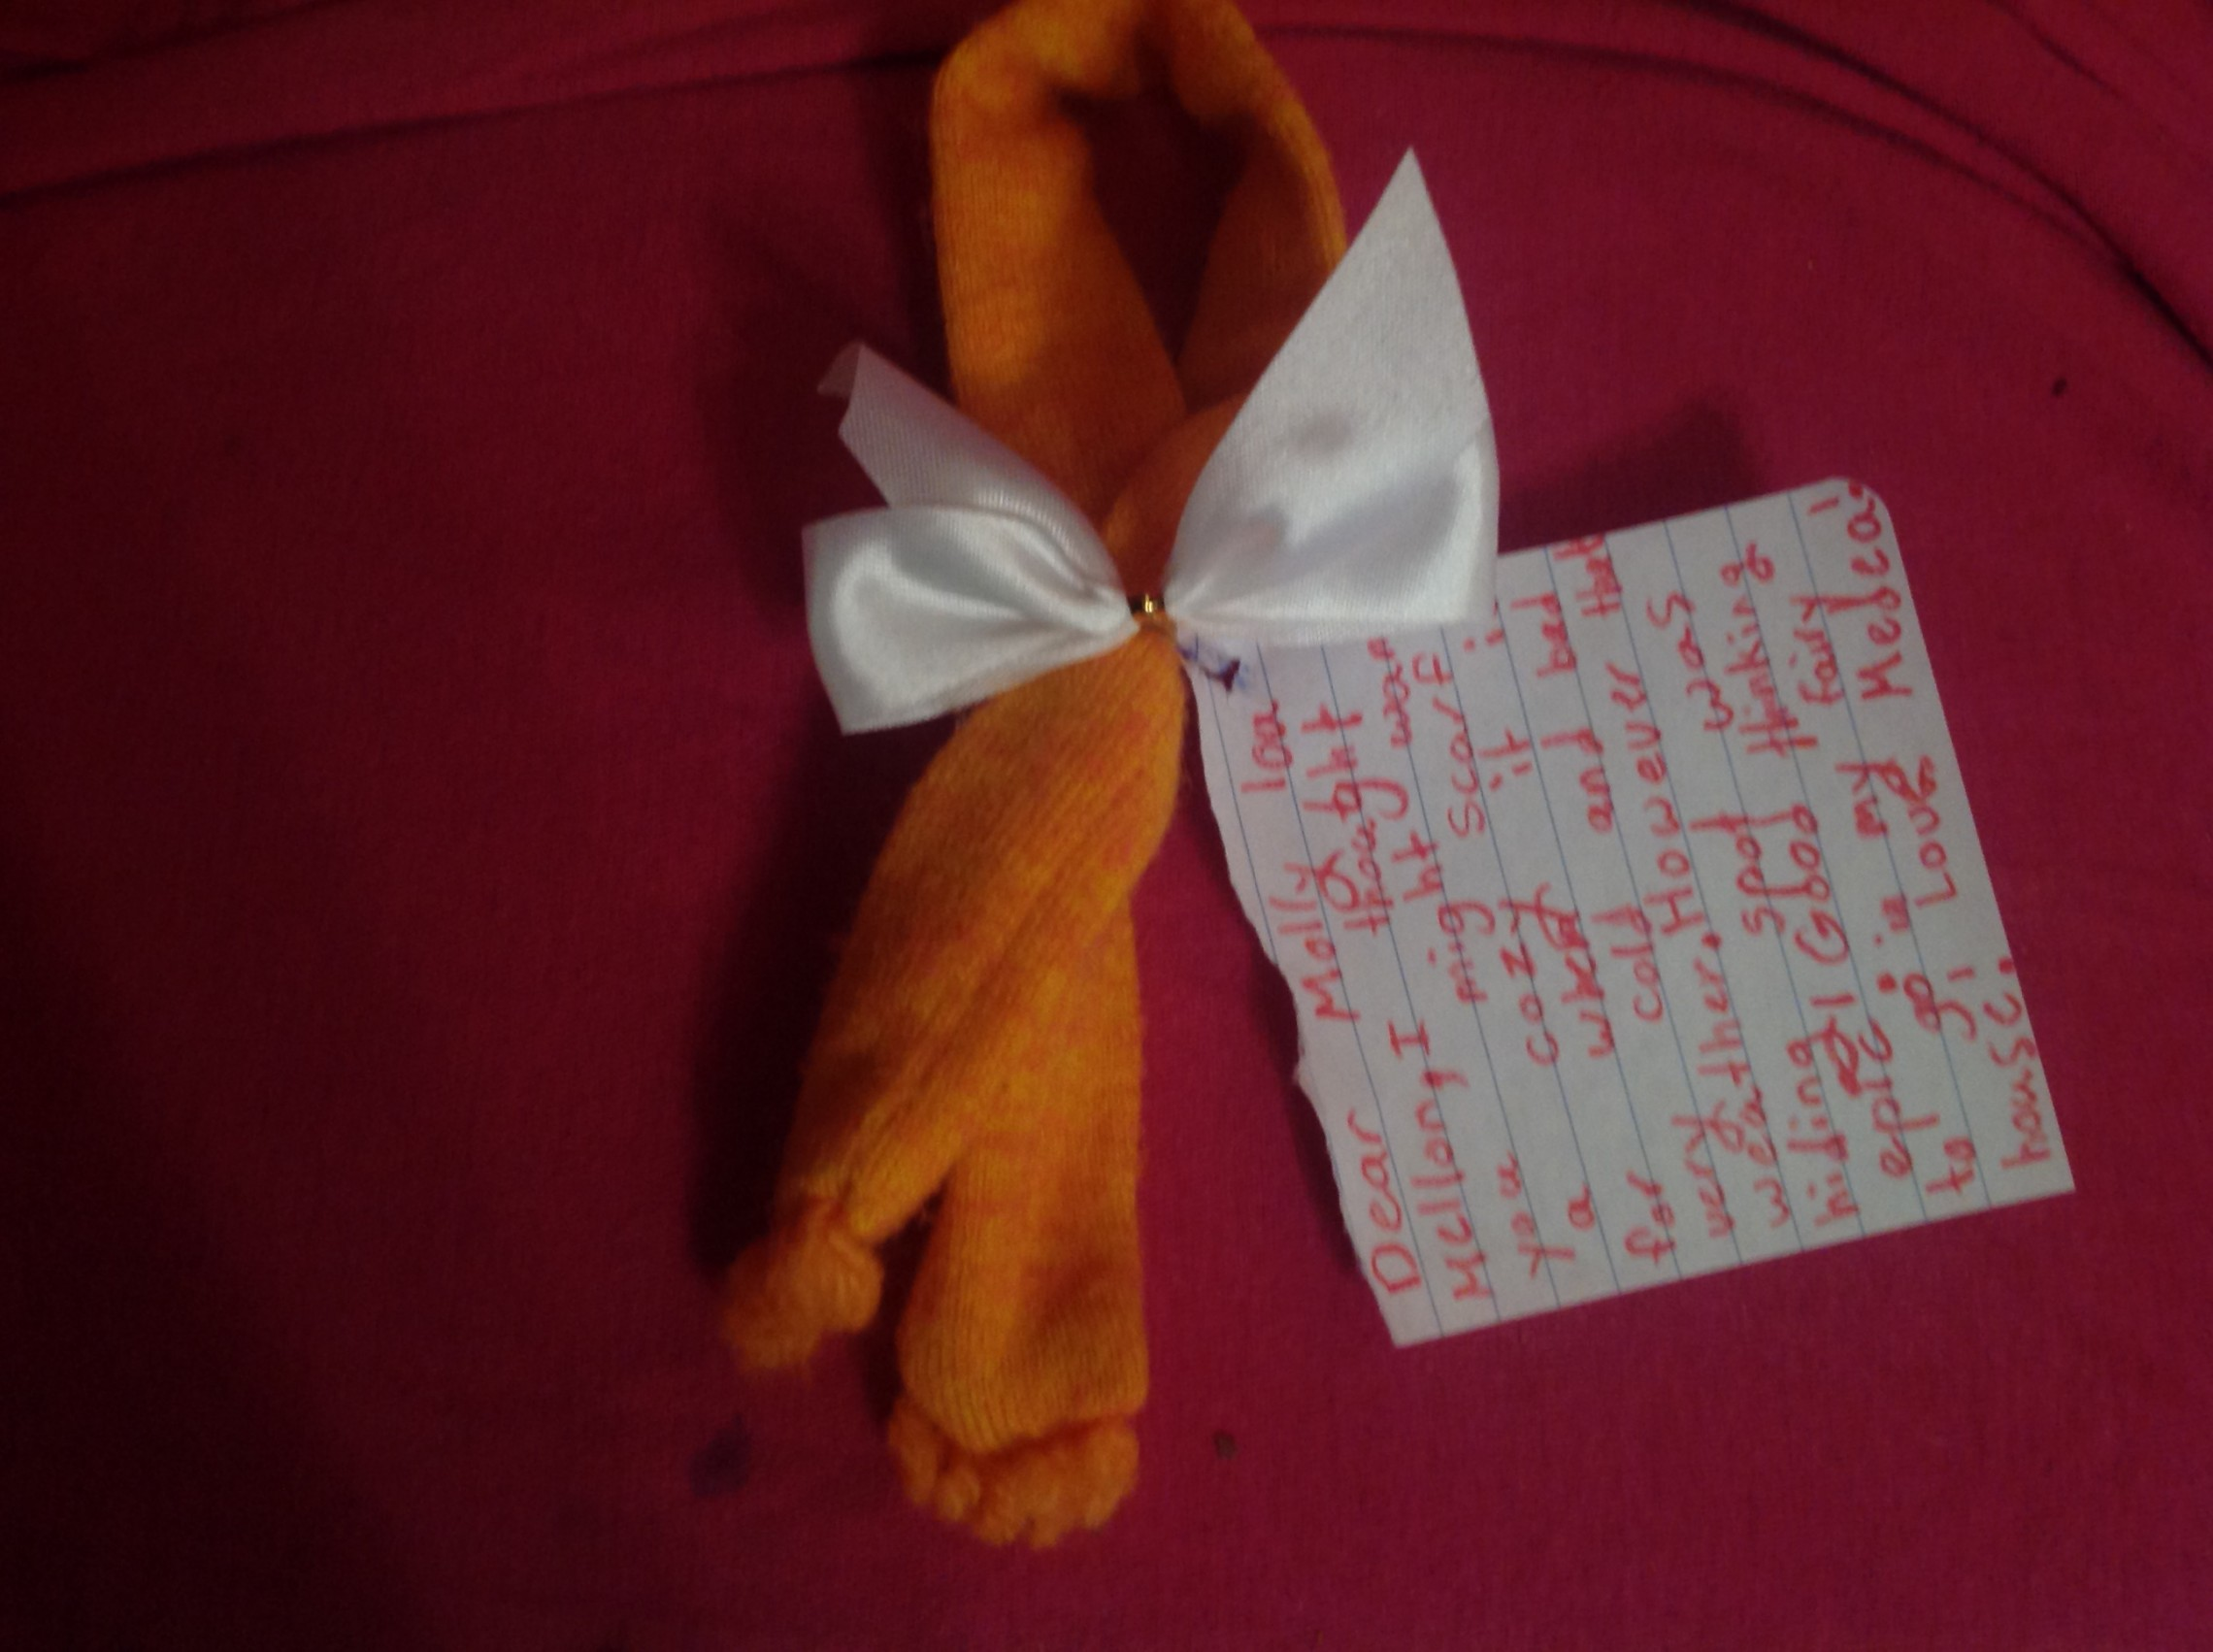 A Special Gift and Message for Molly Lou